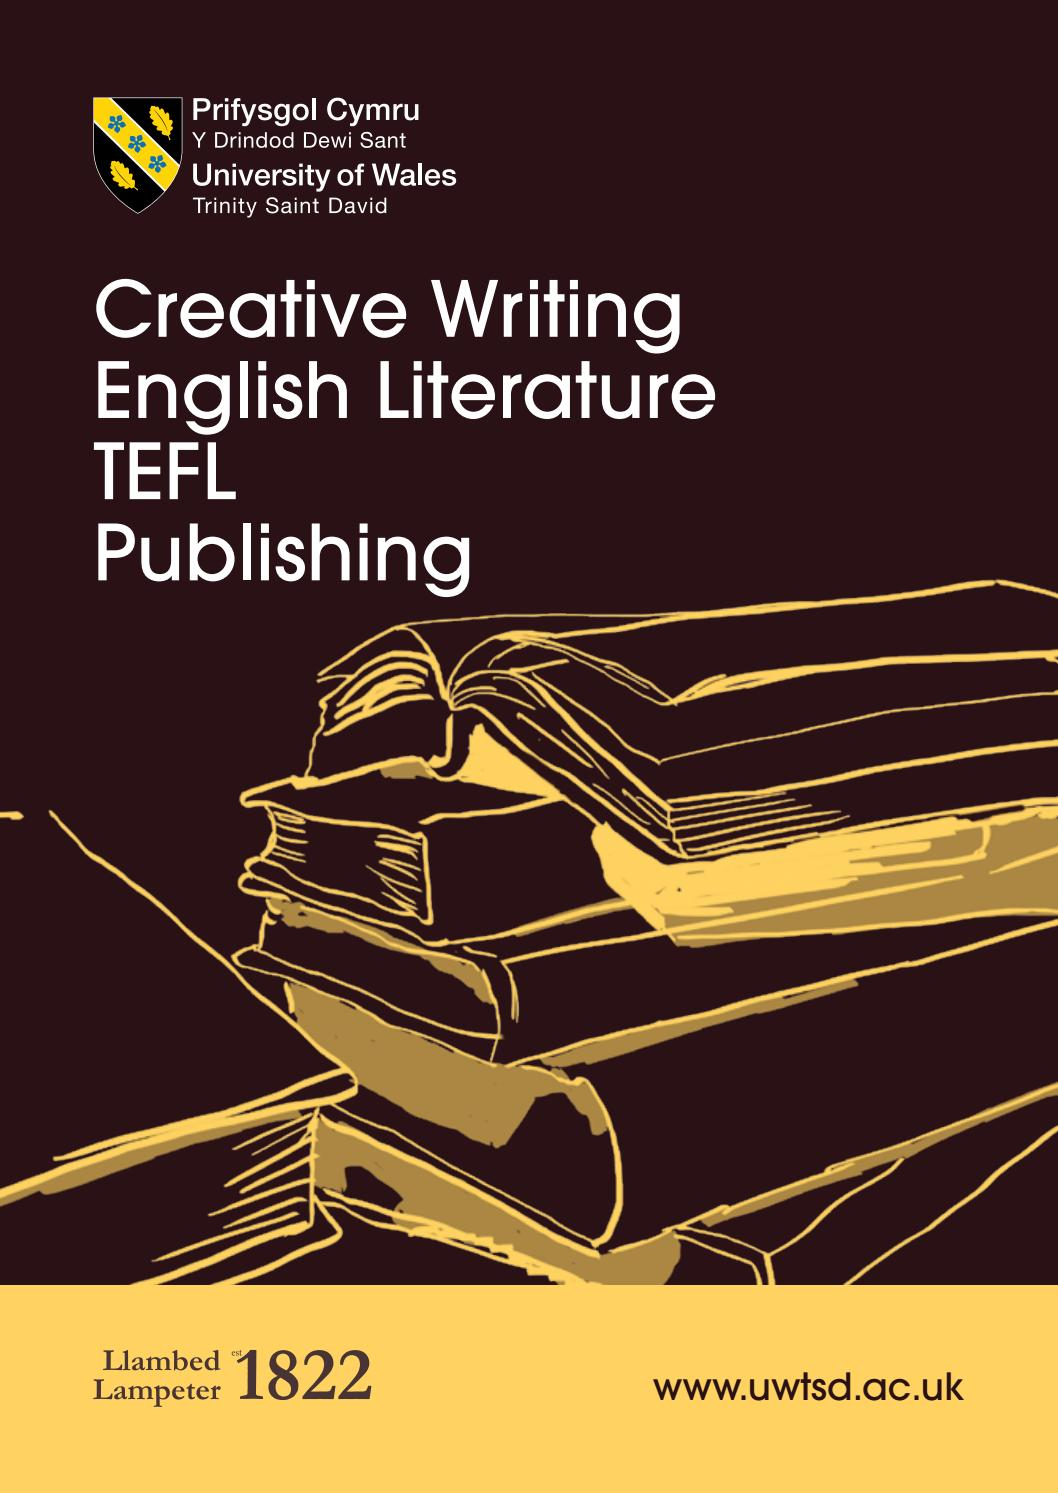 english and creative writing degrees uk